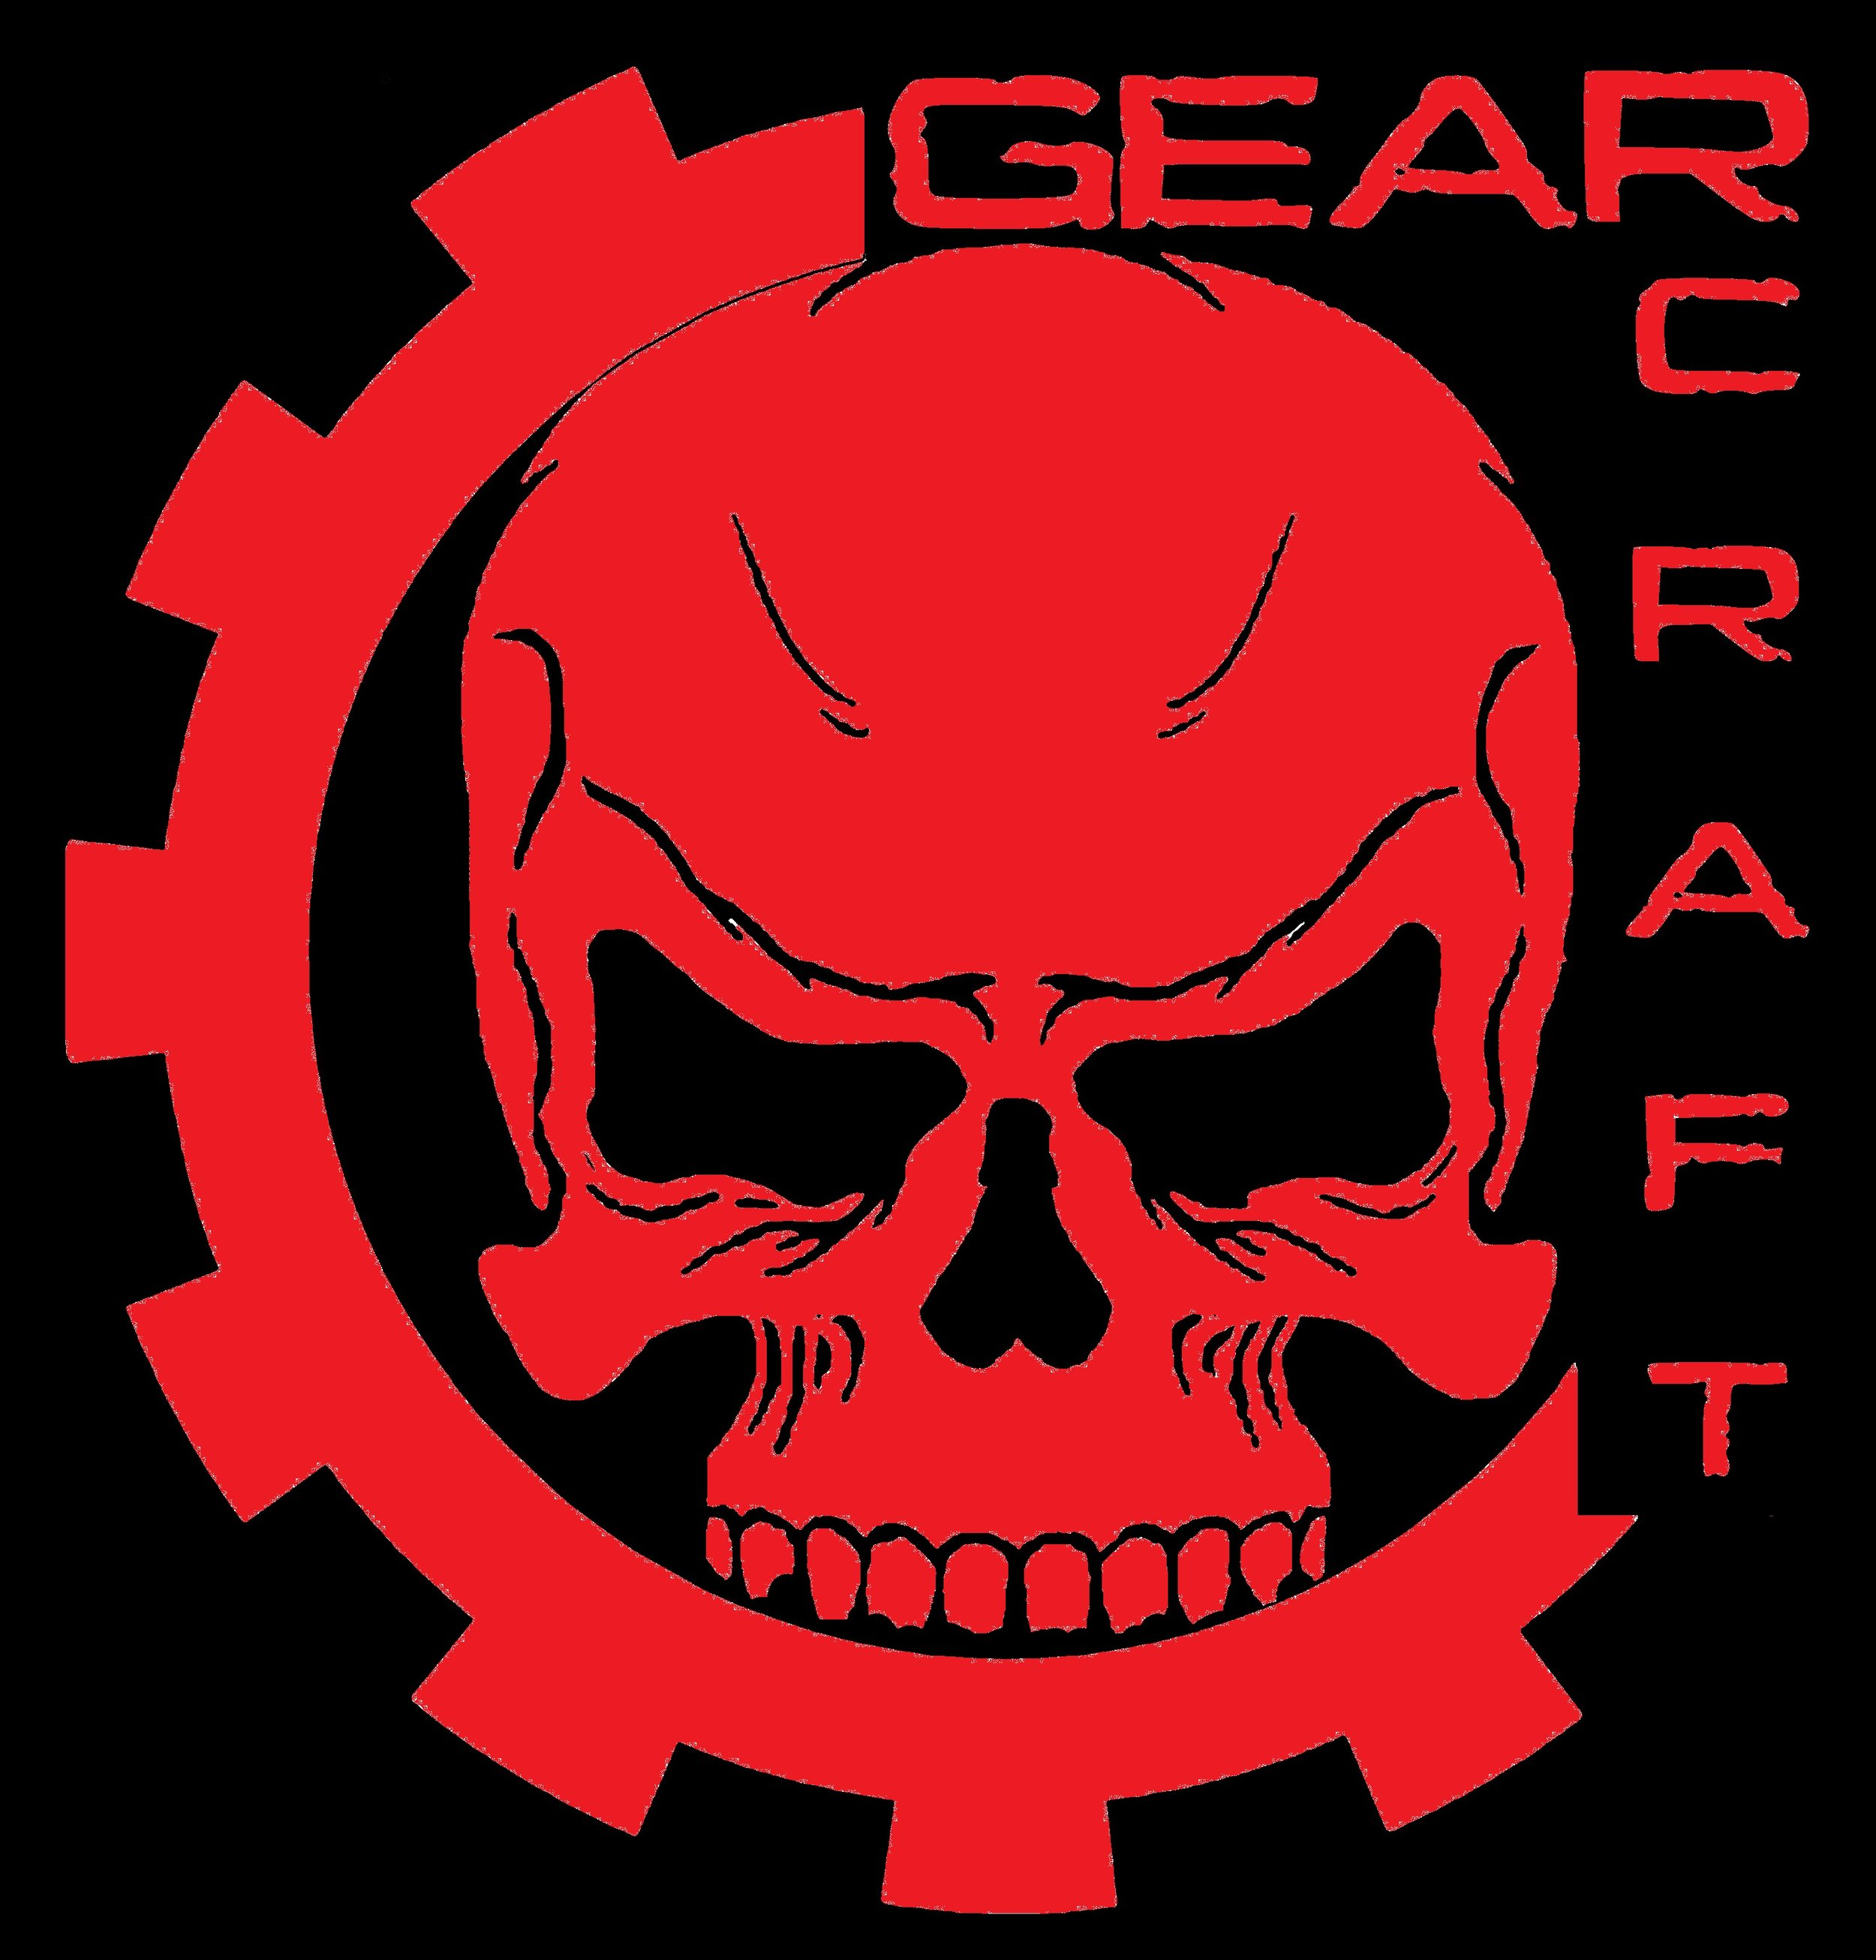 http://gearcraftholsters.com